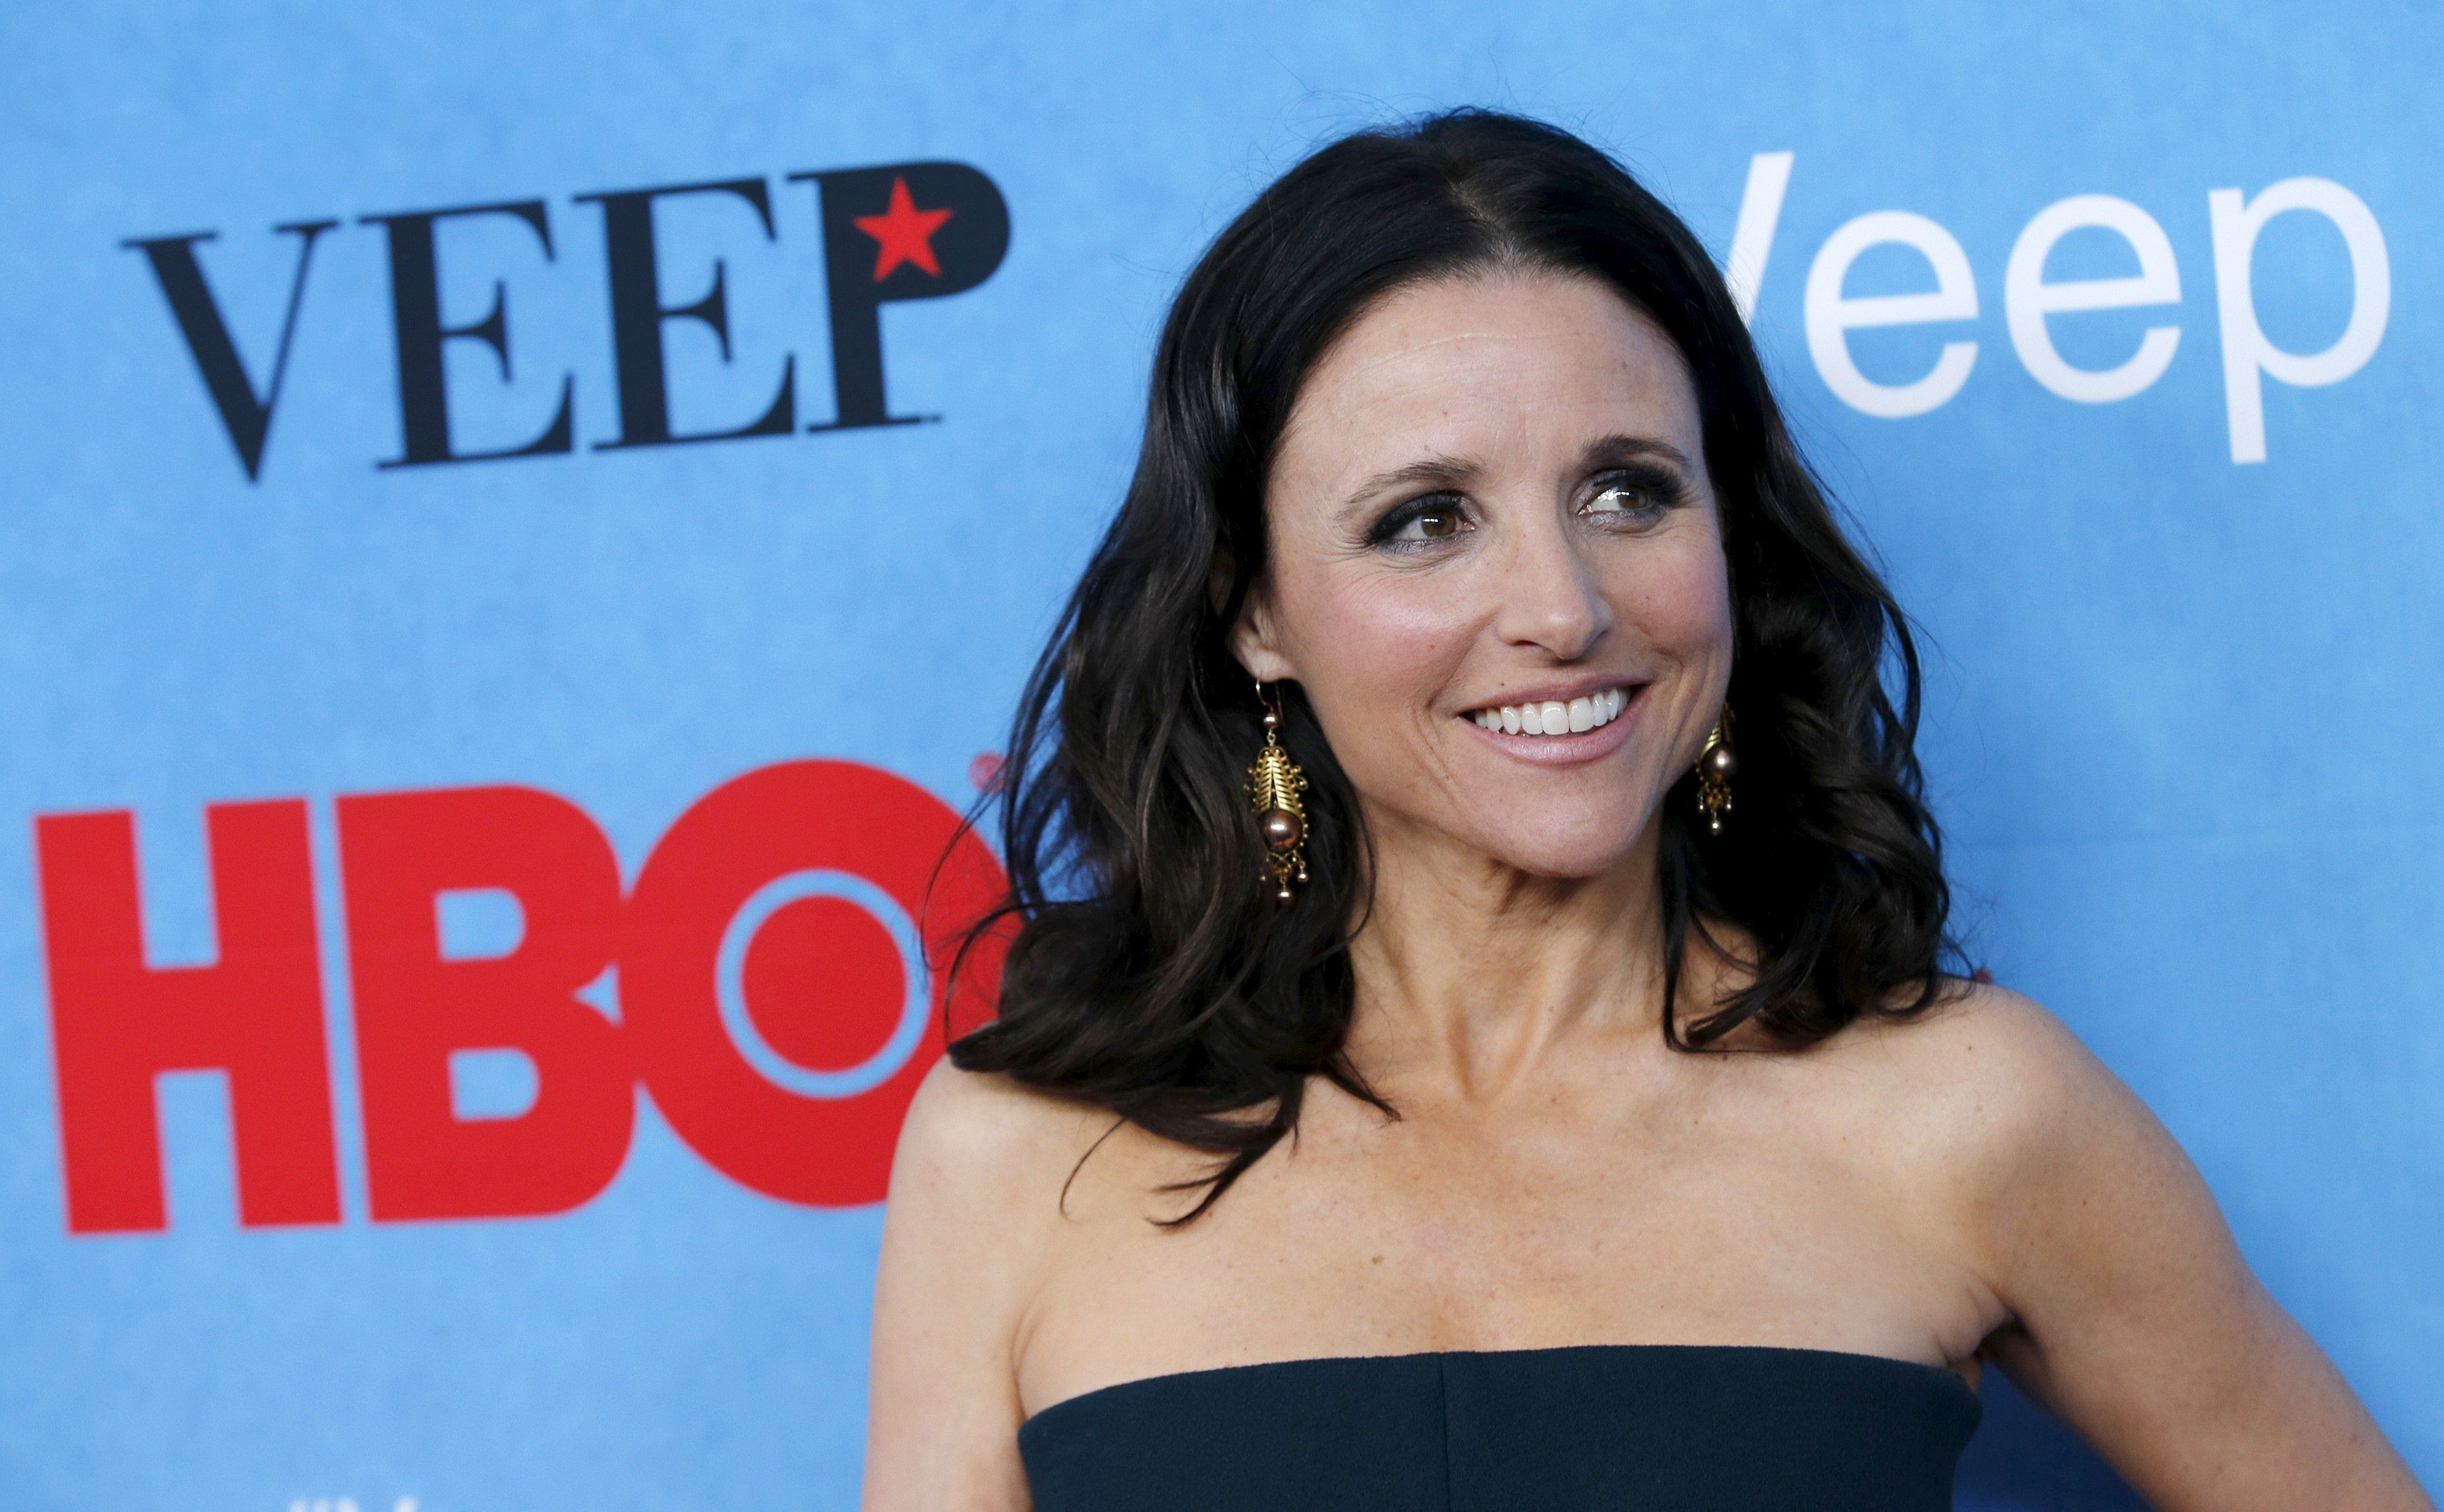 HBO's Veep to End Its Run After Season 7